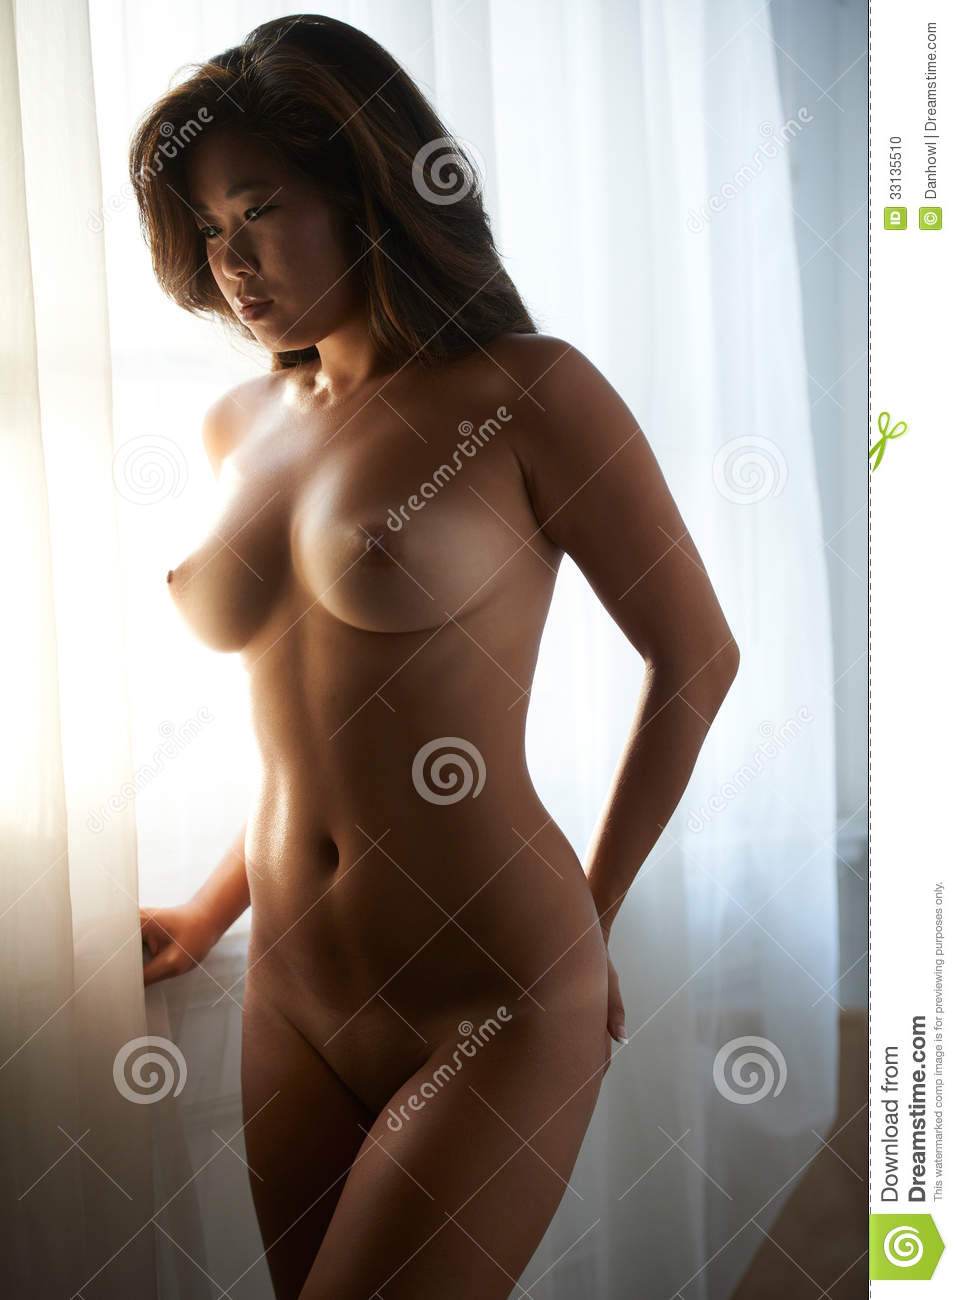 Asian Beauty Nude Stock Photo Image Of Nipples, Figure -7390